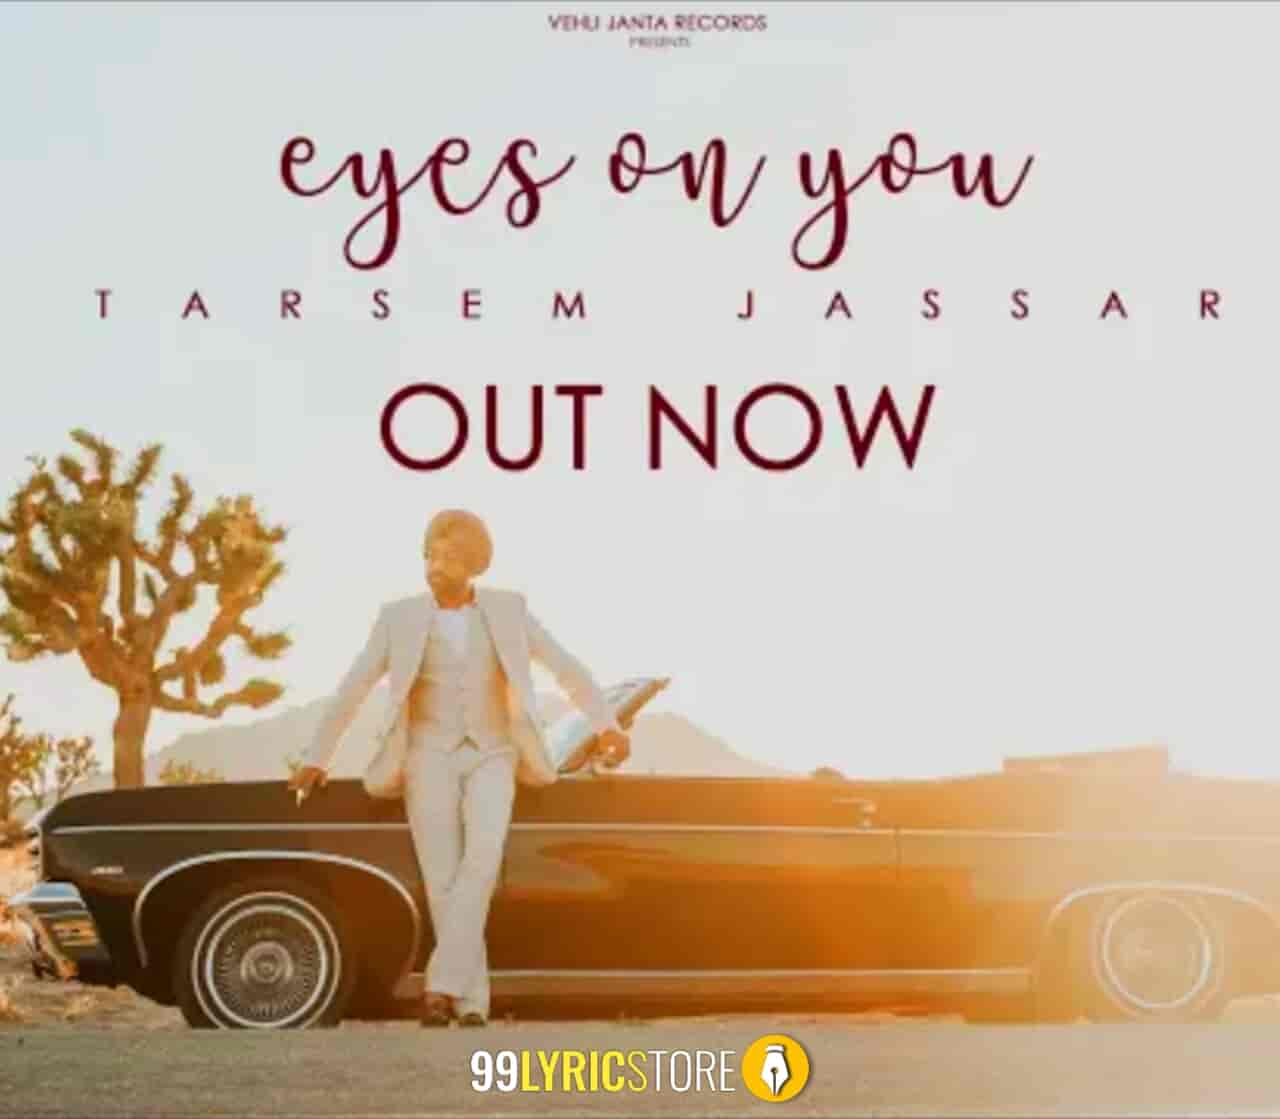 Eyes On You Punjabi Songs sung and penned by Tarsem Jassar